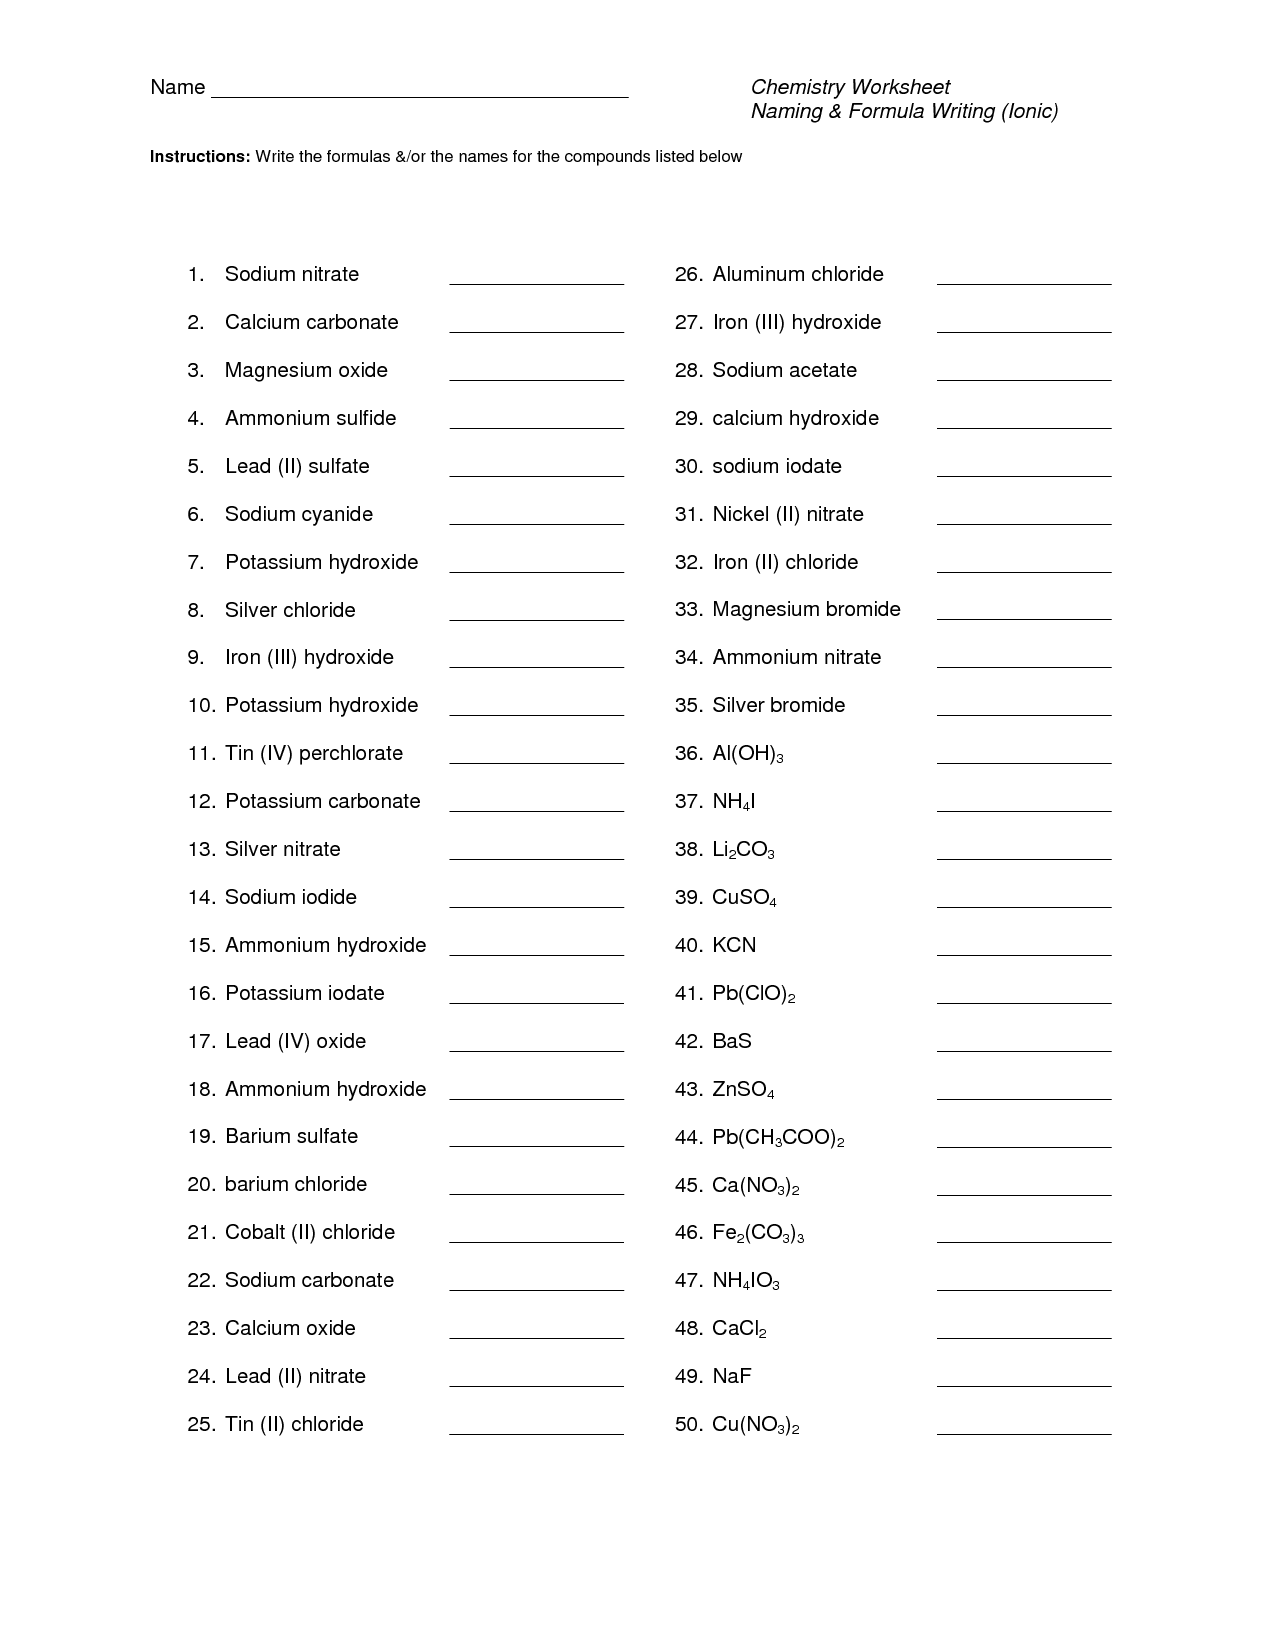 43 Binary Ionic Compounds Worksheet Answers, Writing And Naming